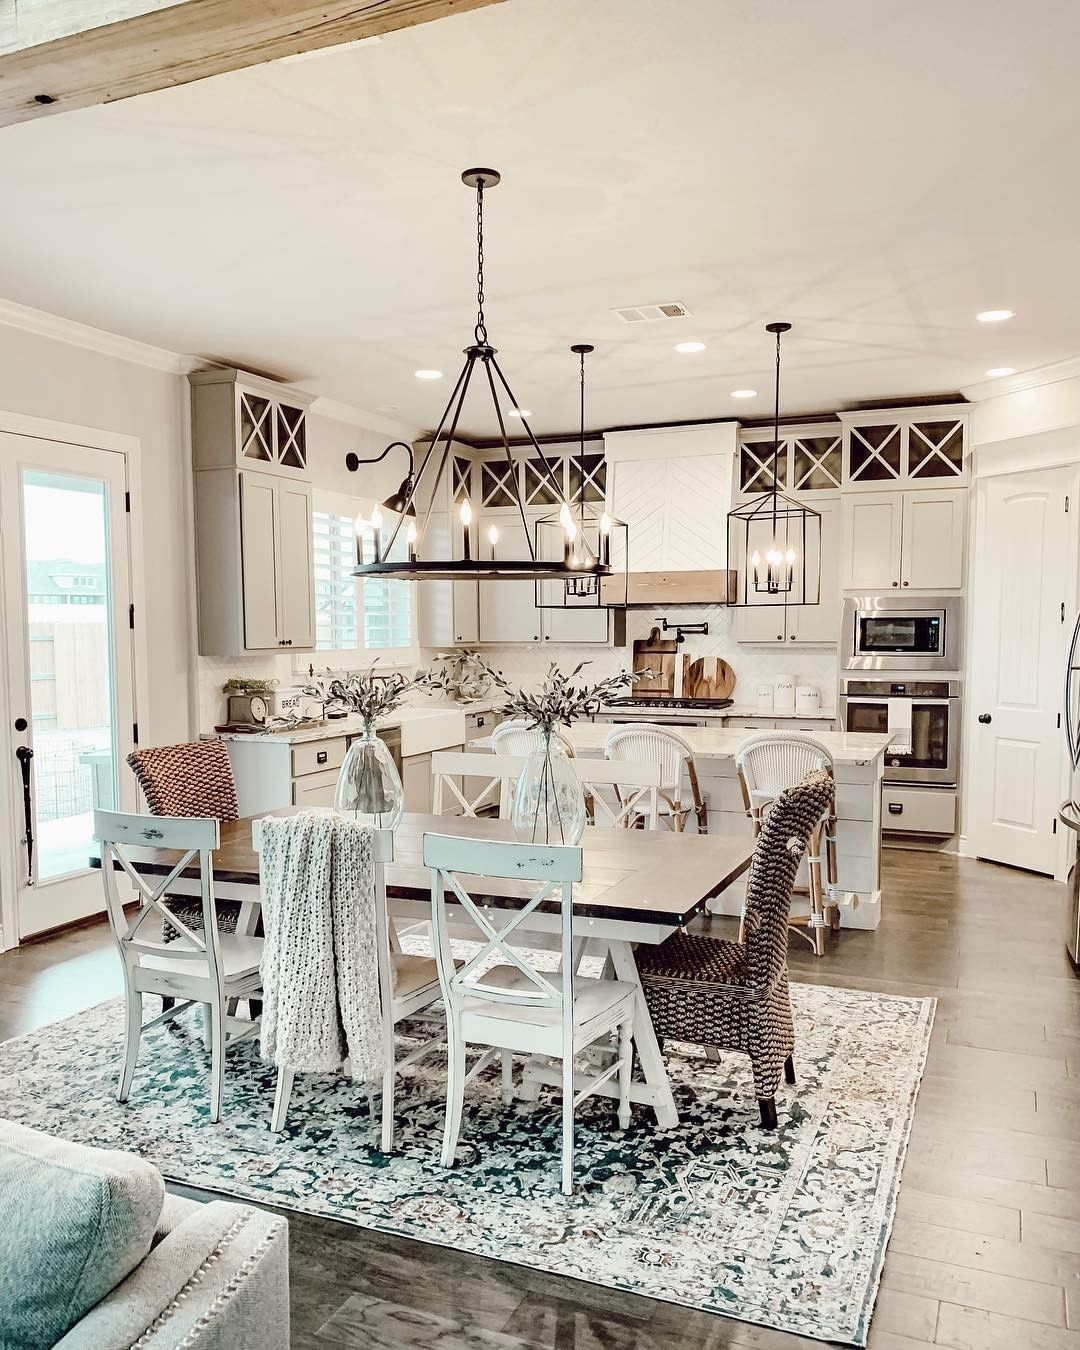 """DECOR STEALS: Home Decor Deals on Instagram: """"Check out this open kitchen and dining space styled by @ourfauxfarmhouse. We love her use of that lovely area rug under her dining table.…"""""""